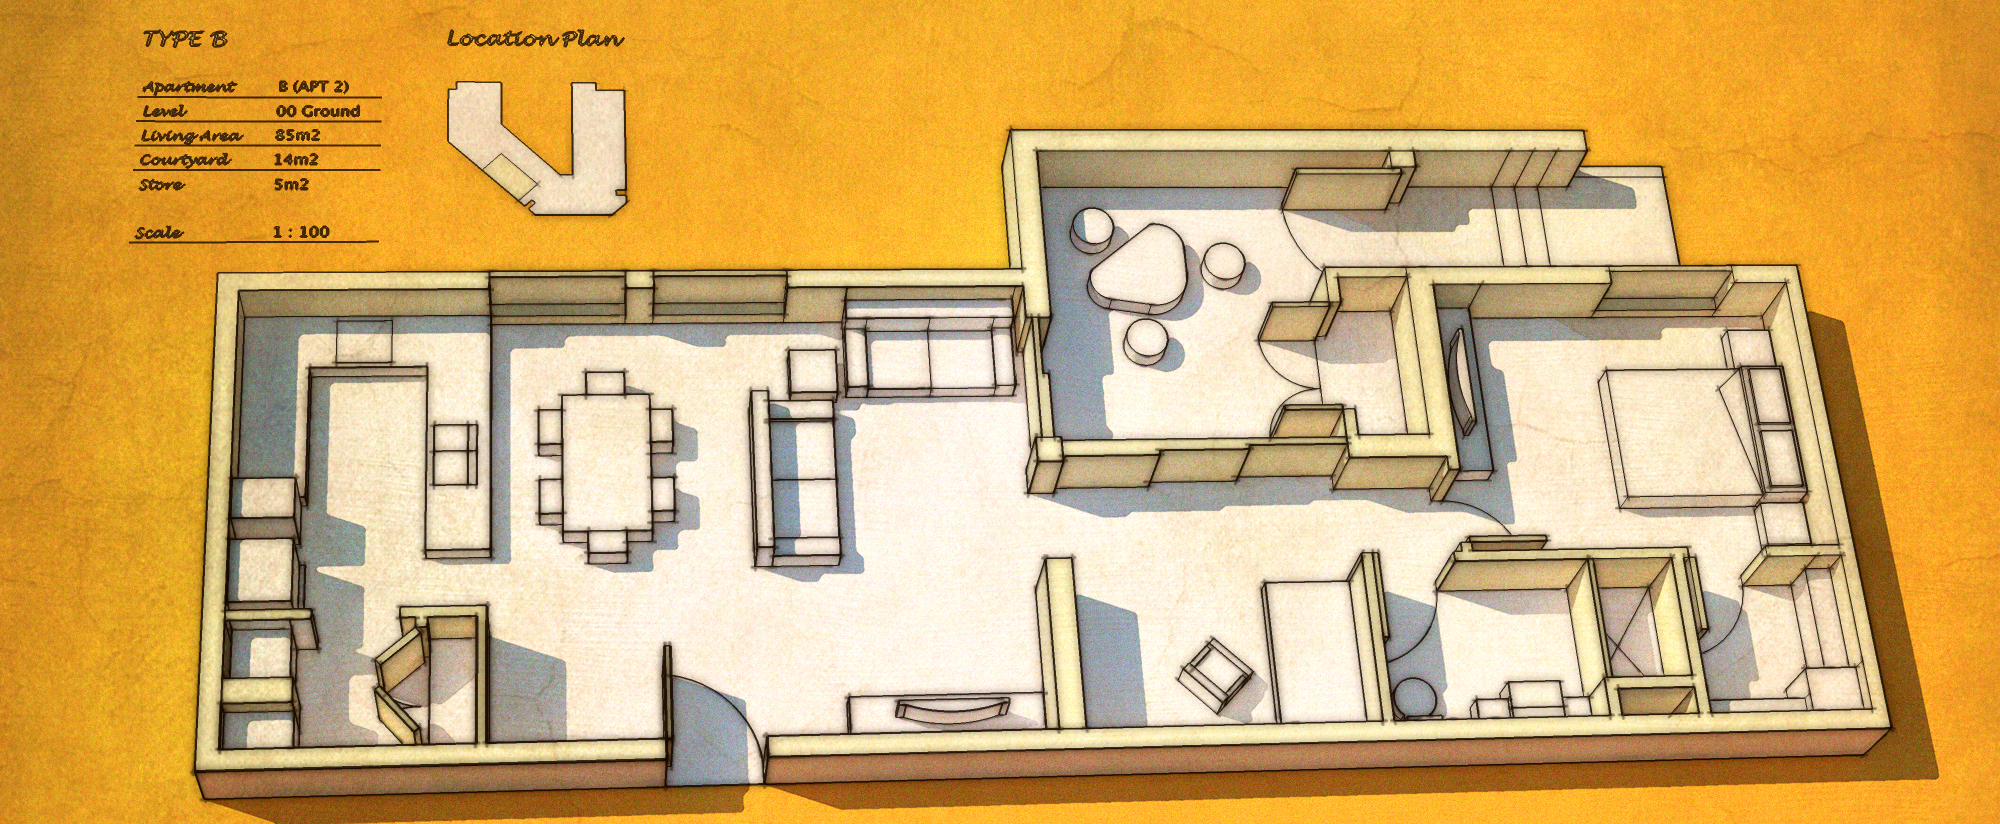 Apartment layout by aconnoll on deviantart for Apartment complex layout